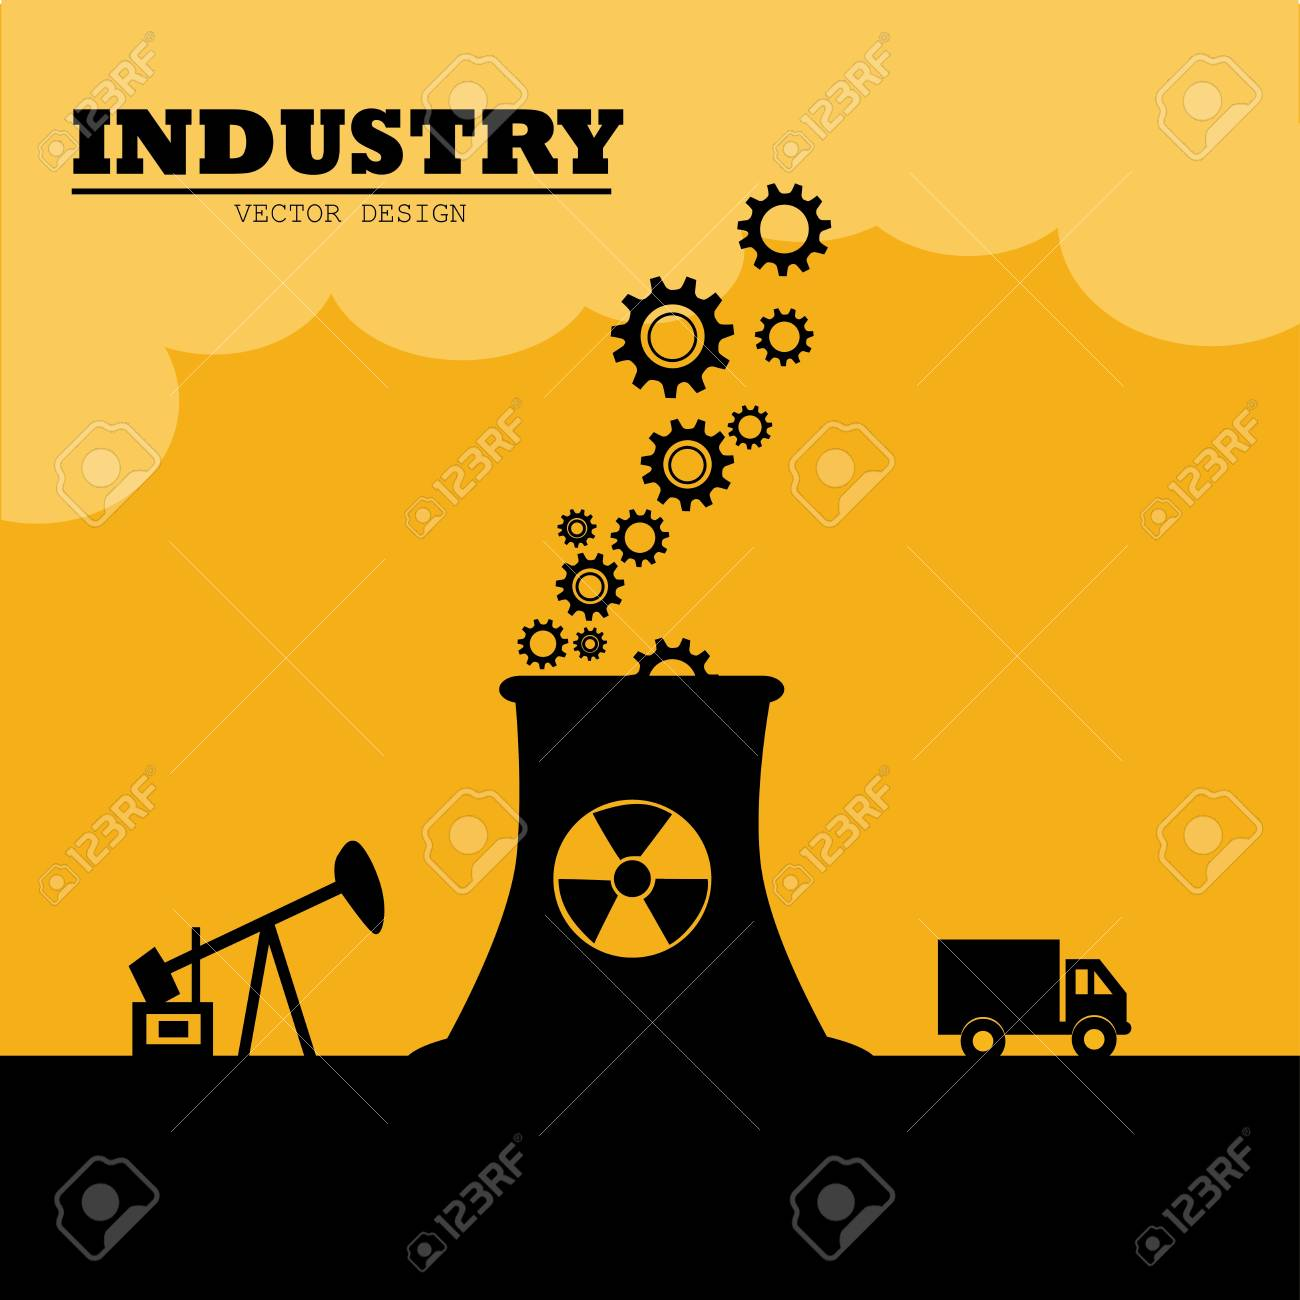 industry design over sky background vector illustration Stock Vector - 20500032